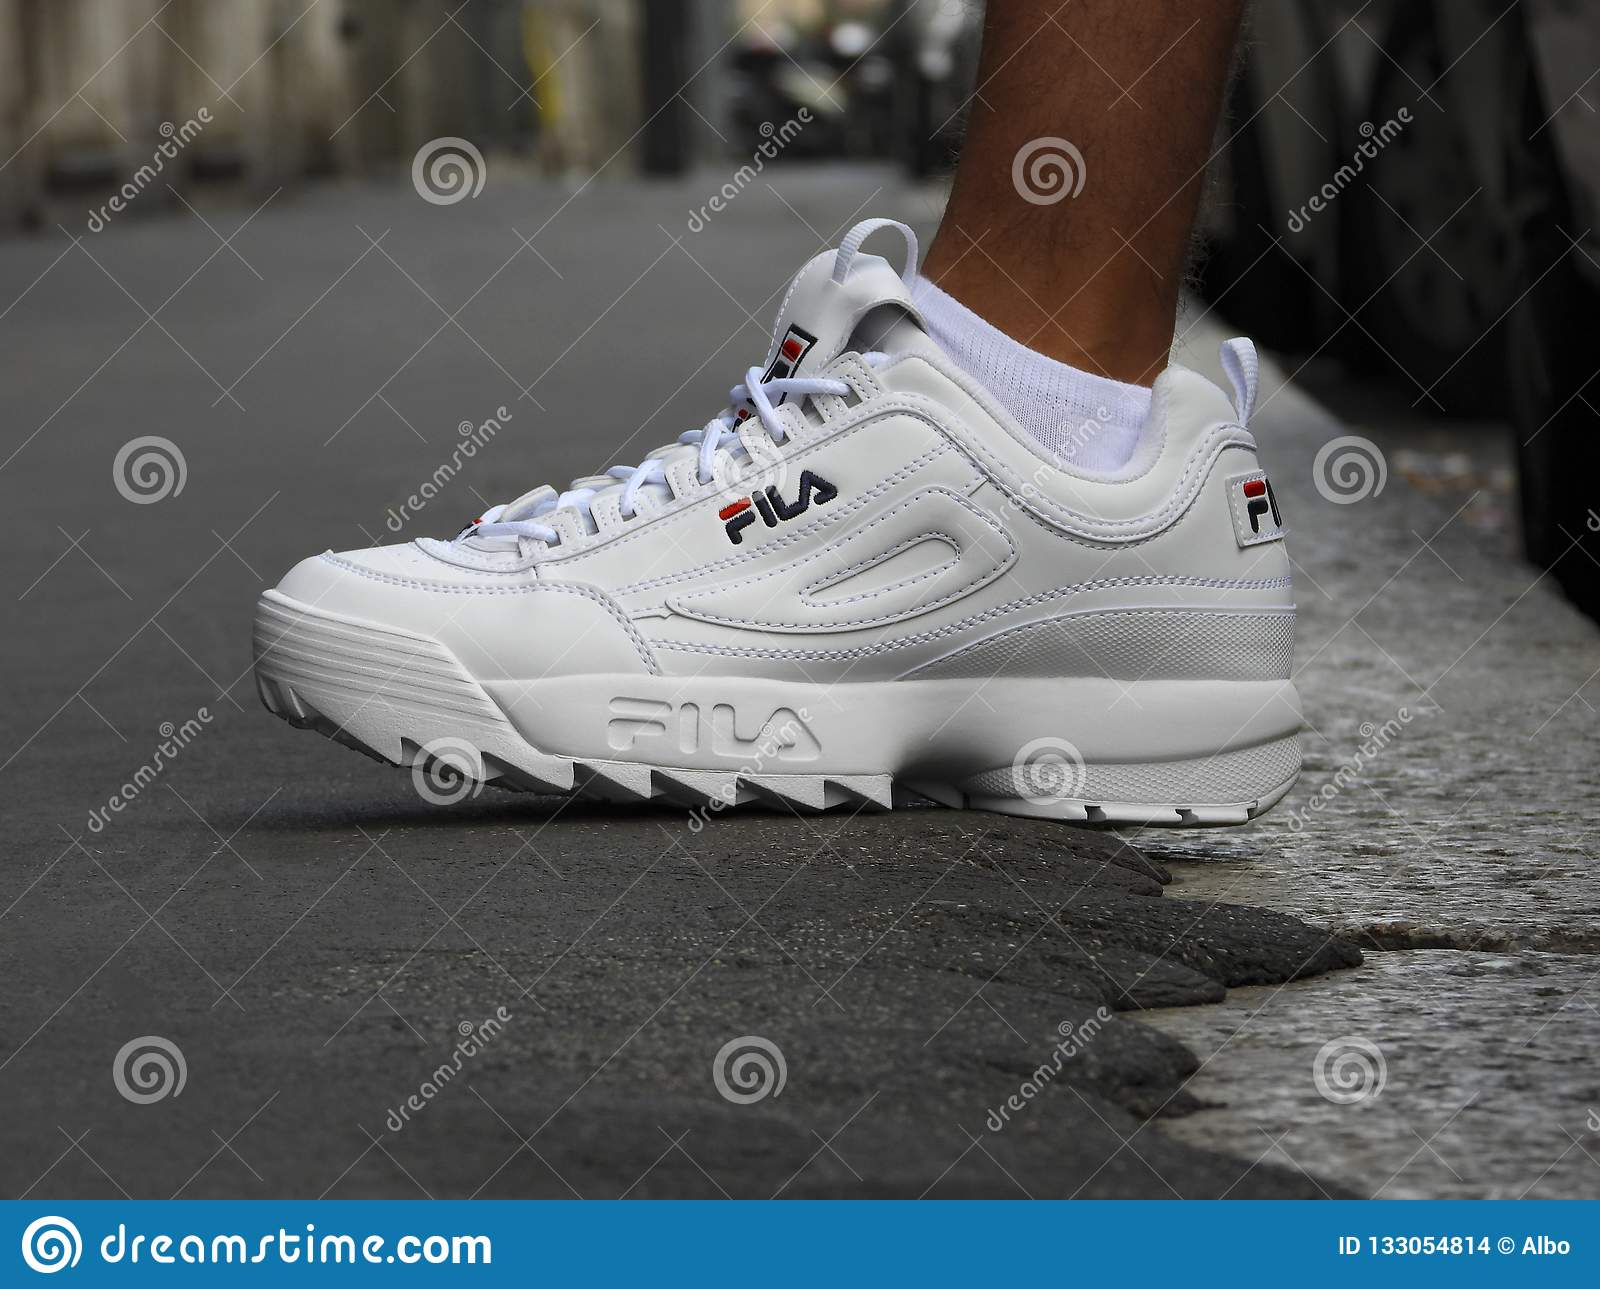 Fila Disruptor Shoes In The Street Editorial Stock Image